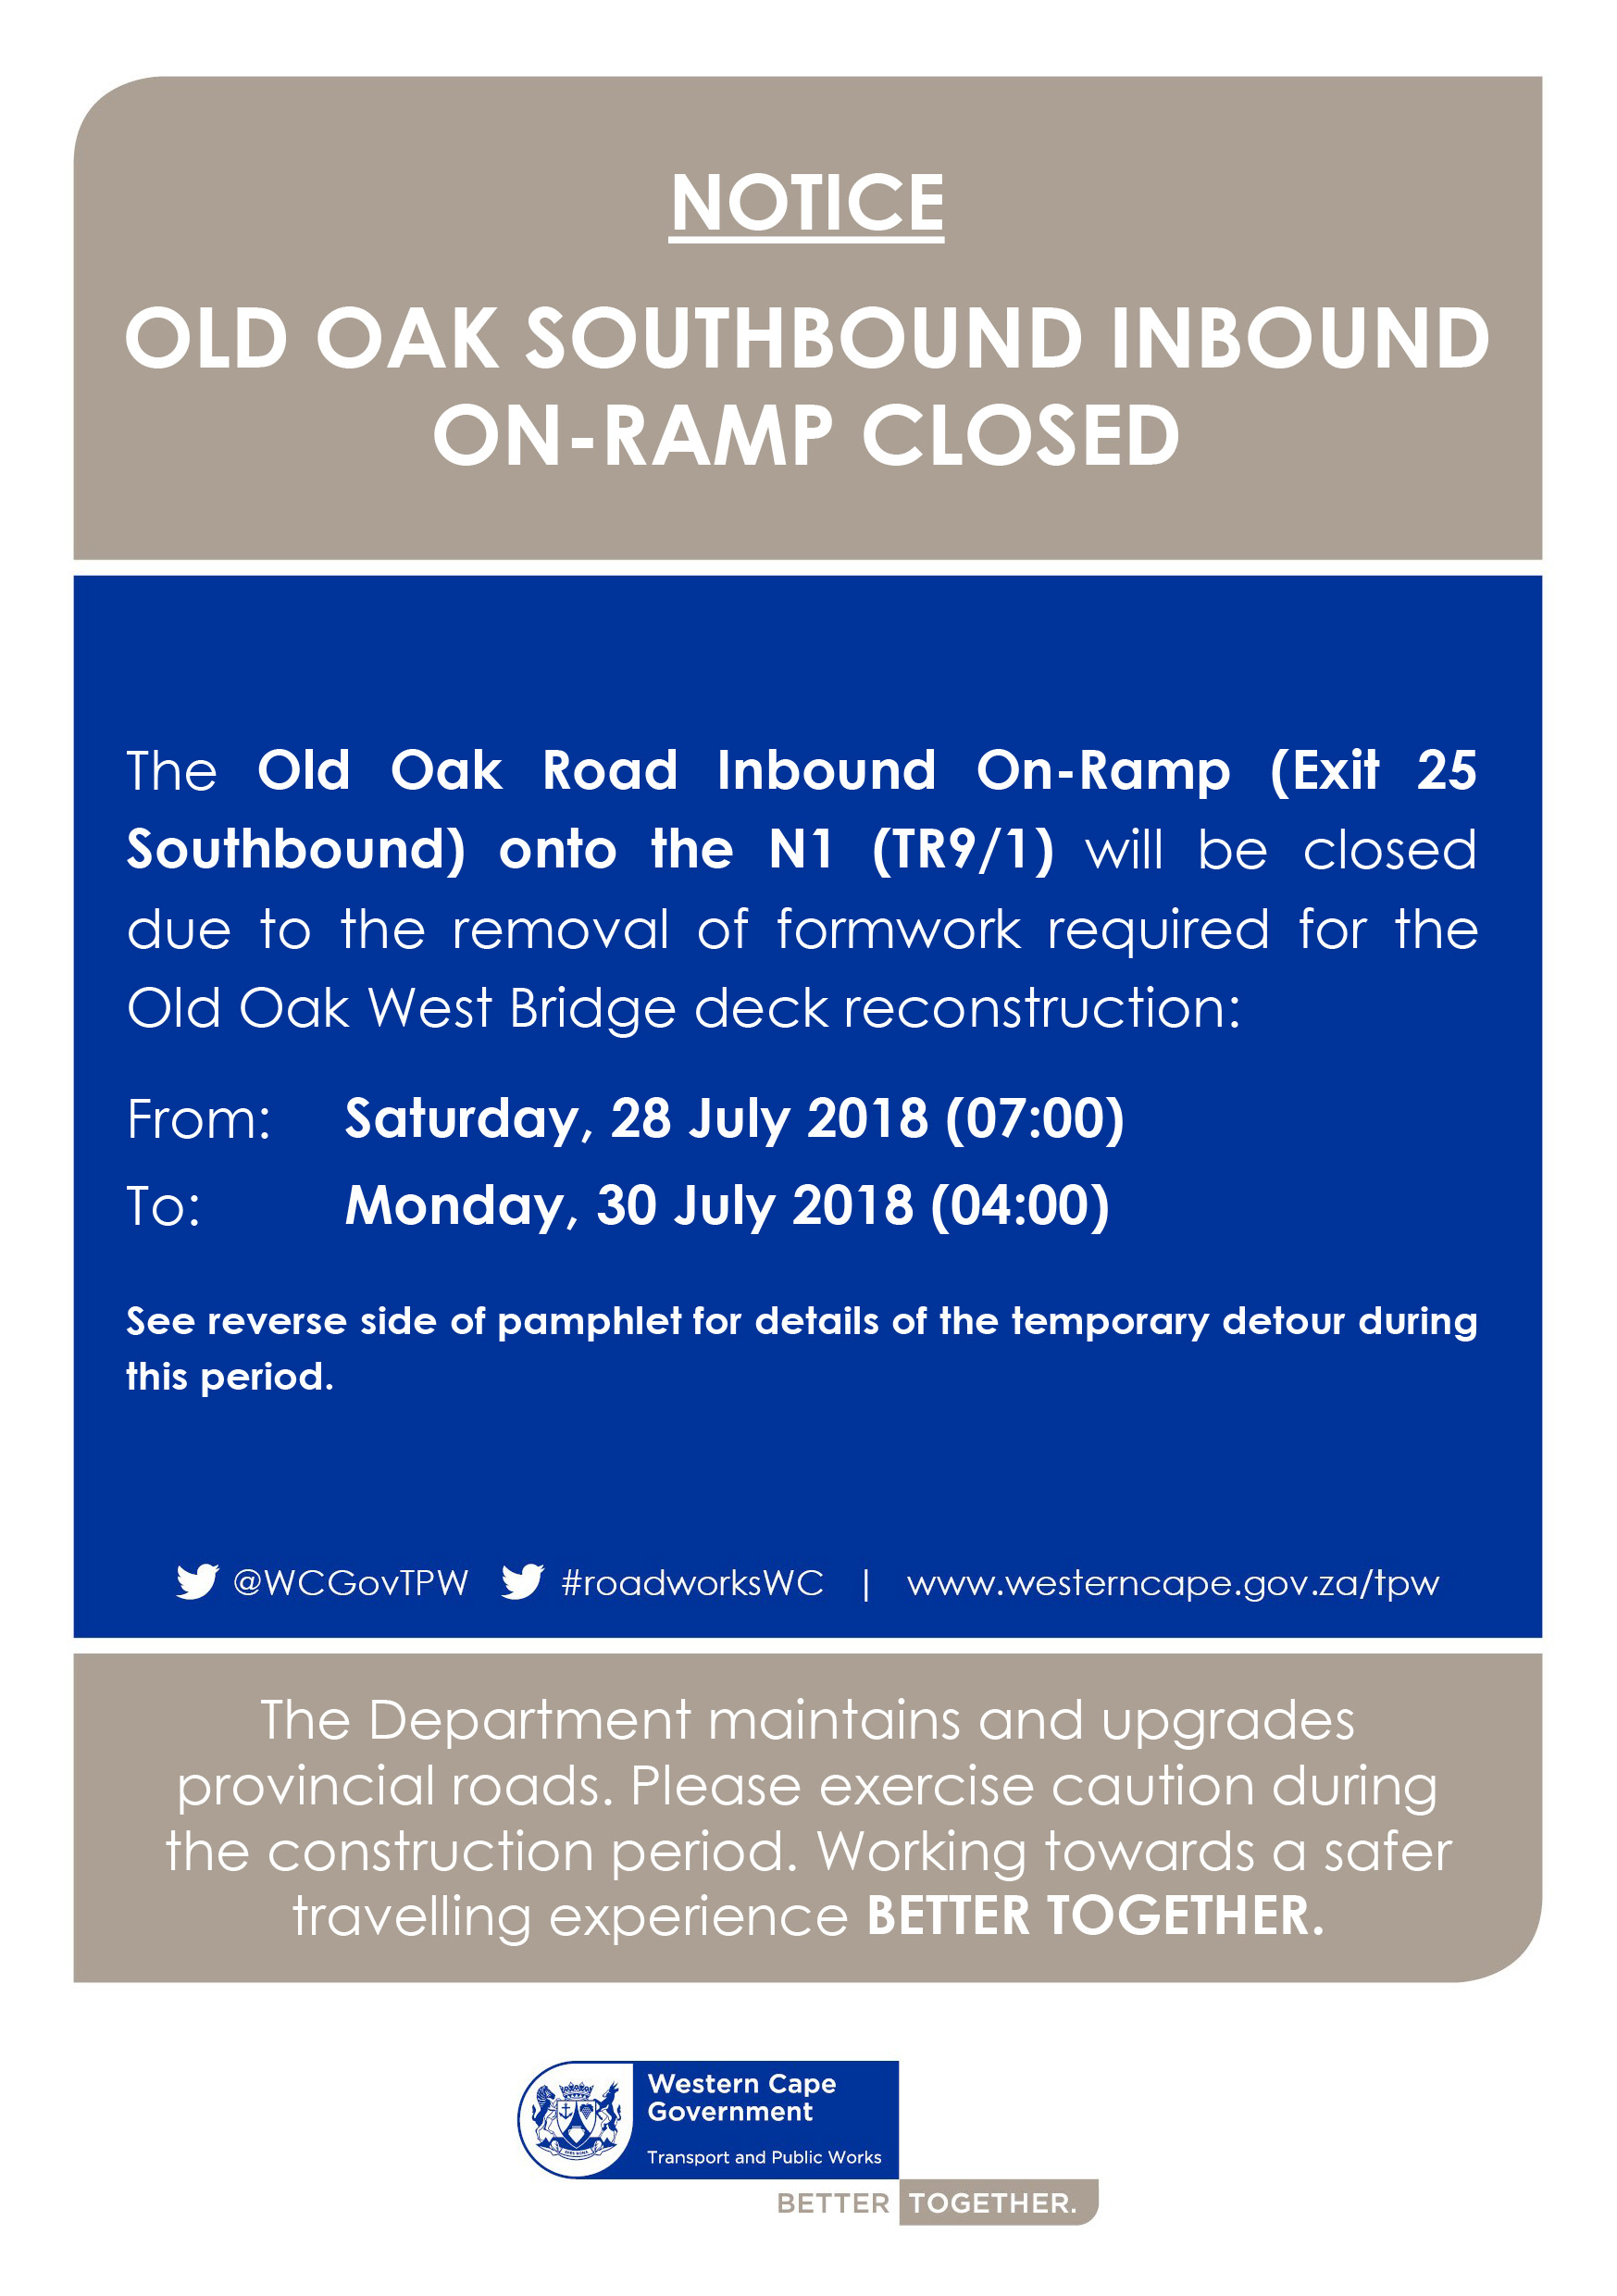 N1 closure in July